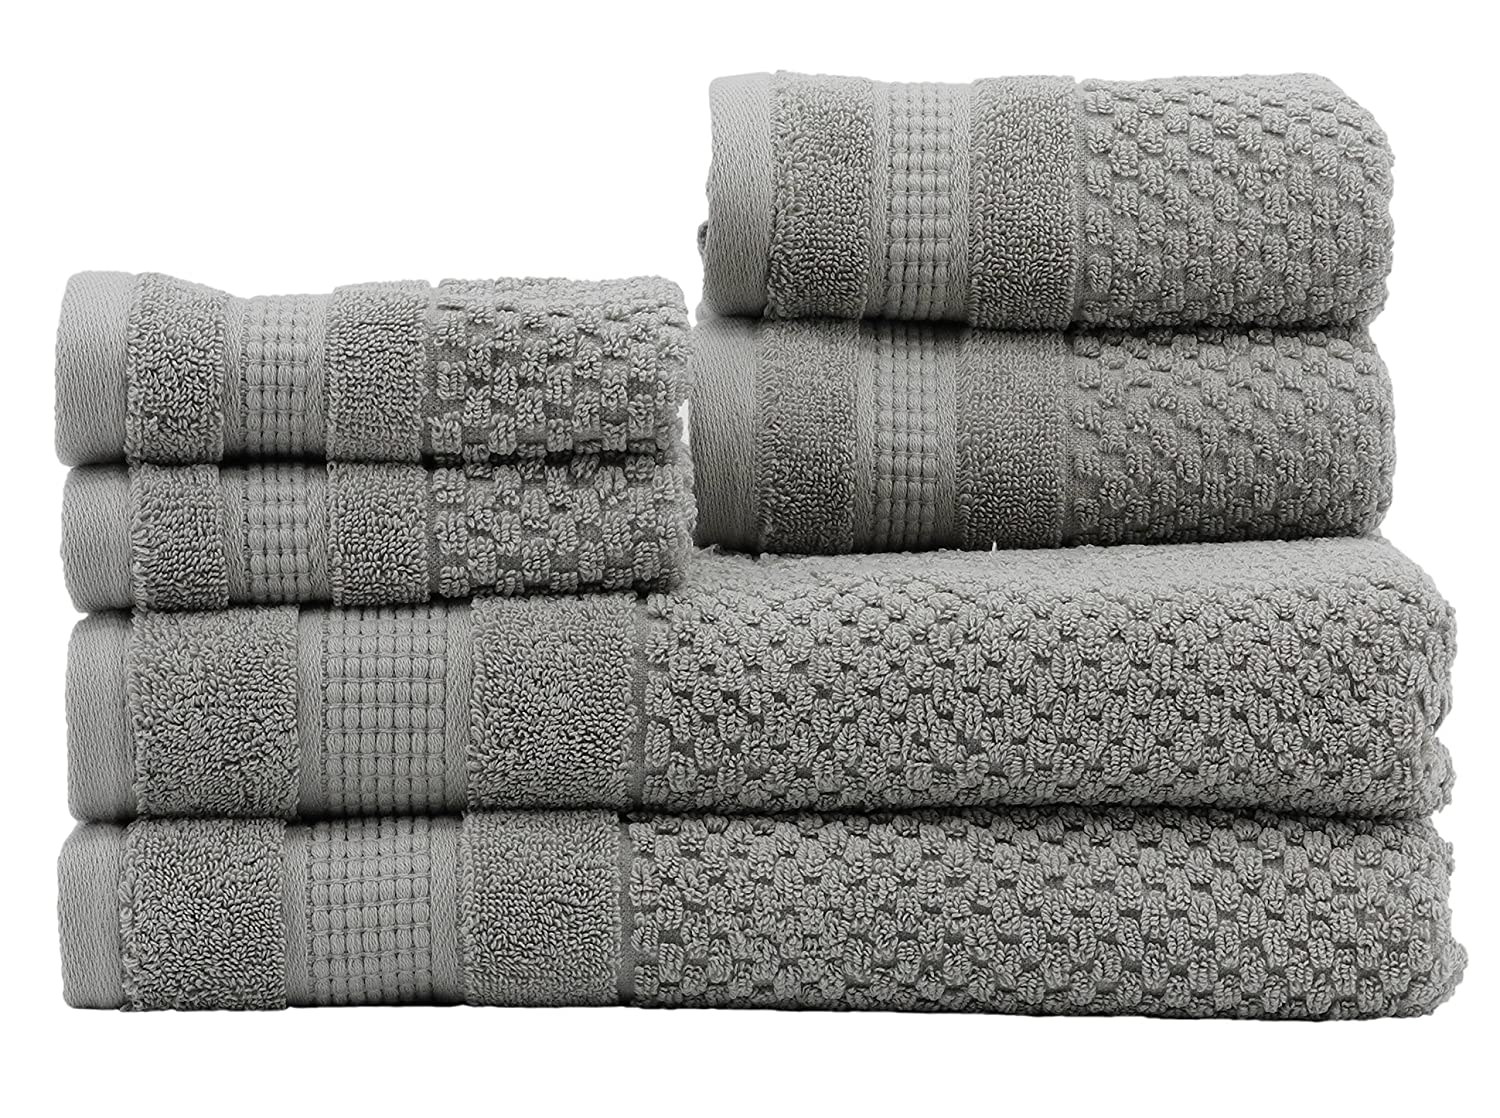 Caro Home Pebble 6 Piece Bath Towel Set, Large, Nickel 6S1372T4205